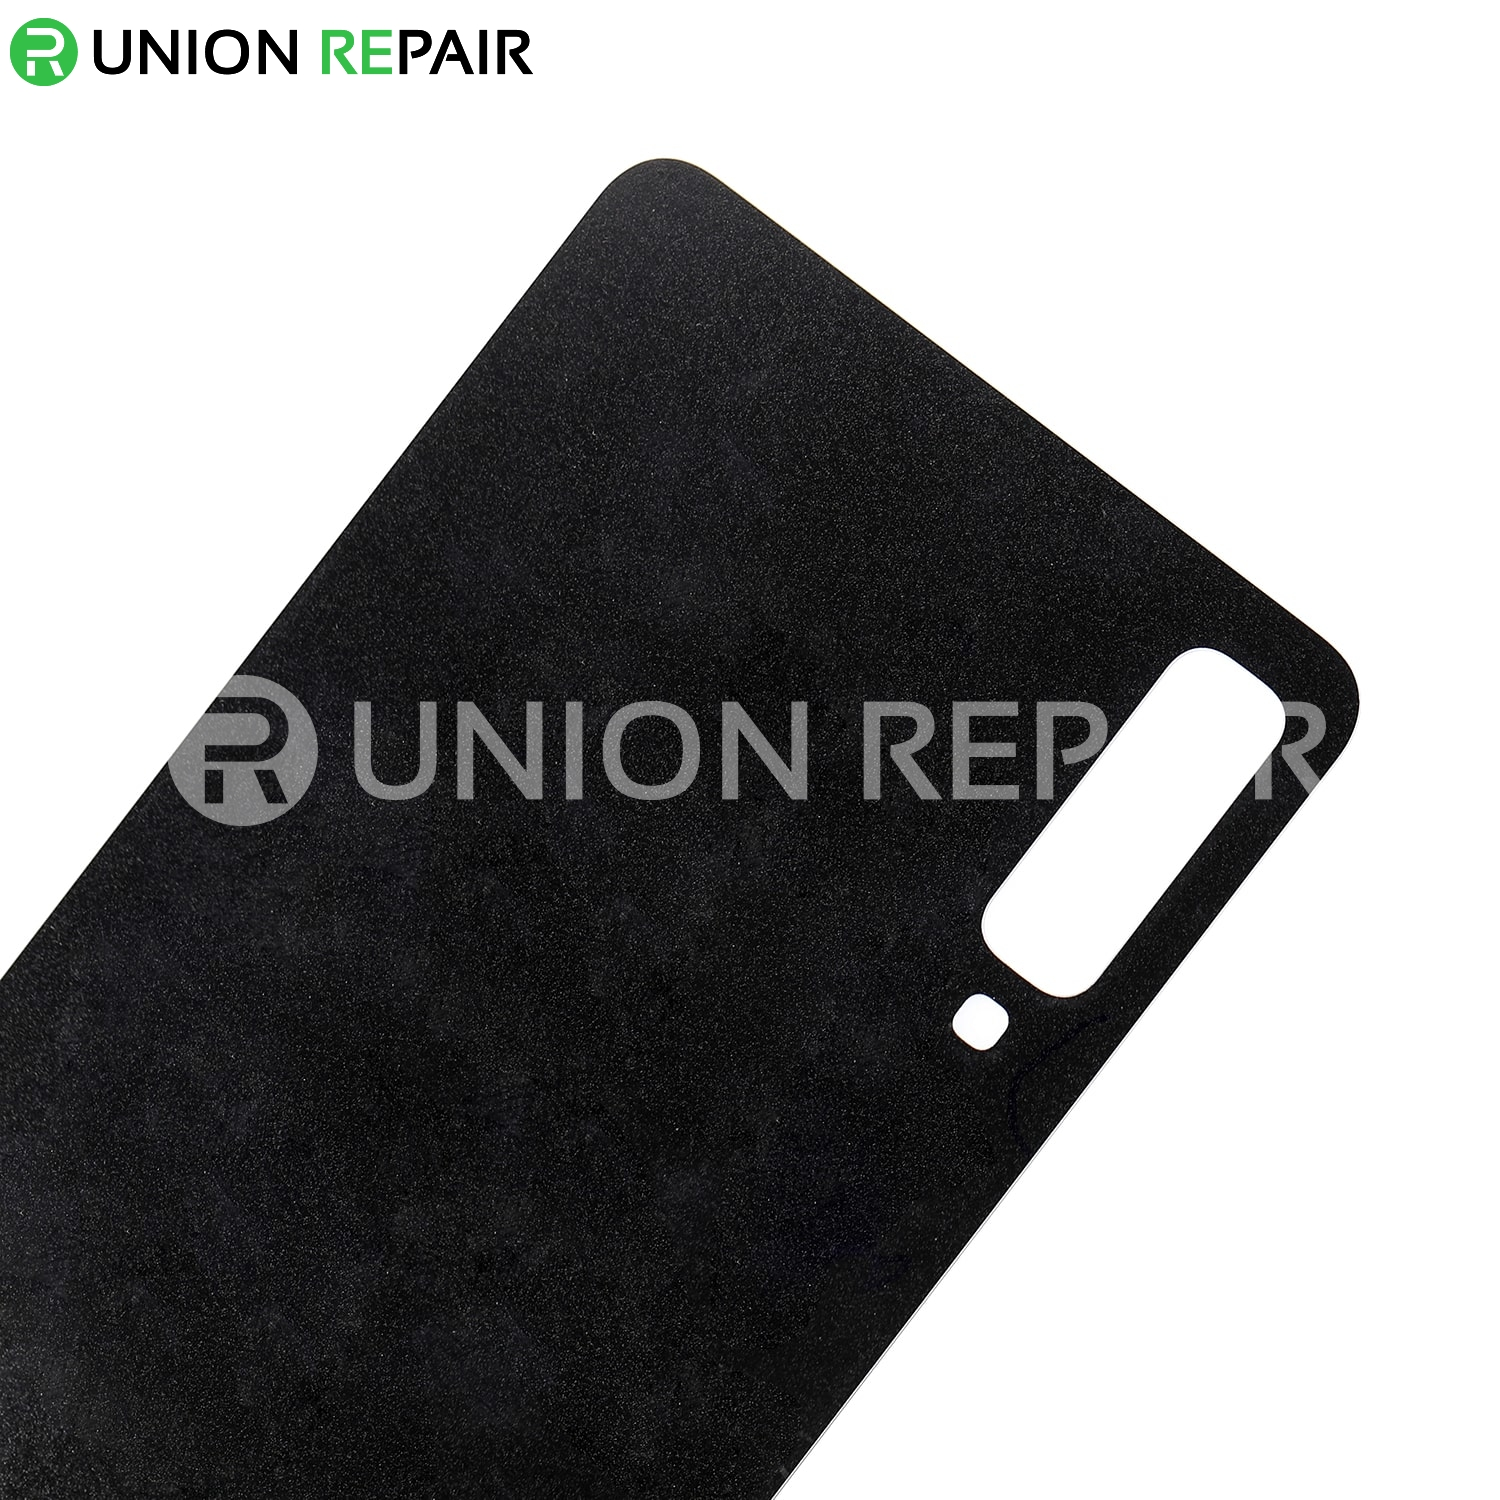 Replacement for Samsung Galaxy A7 (2018) SM-A750 Battery Door - Black